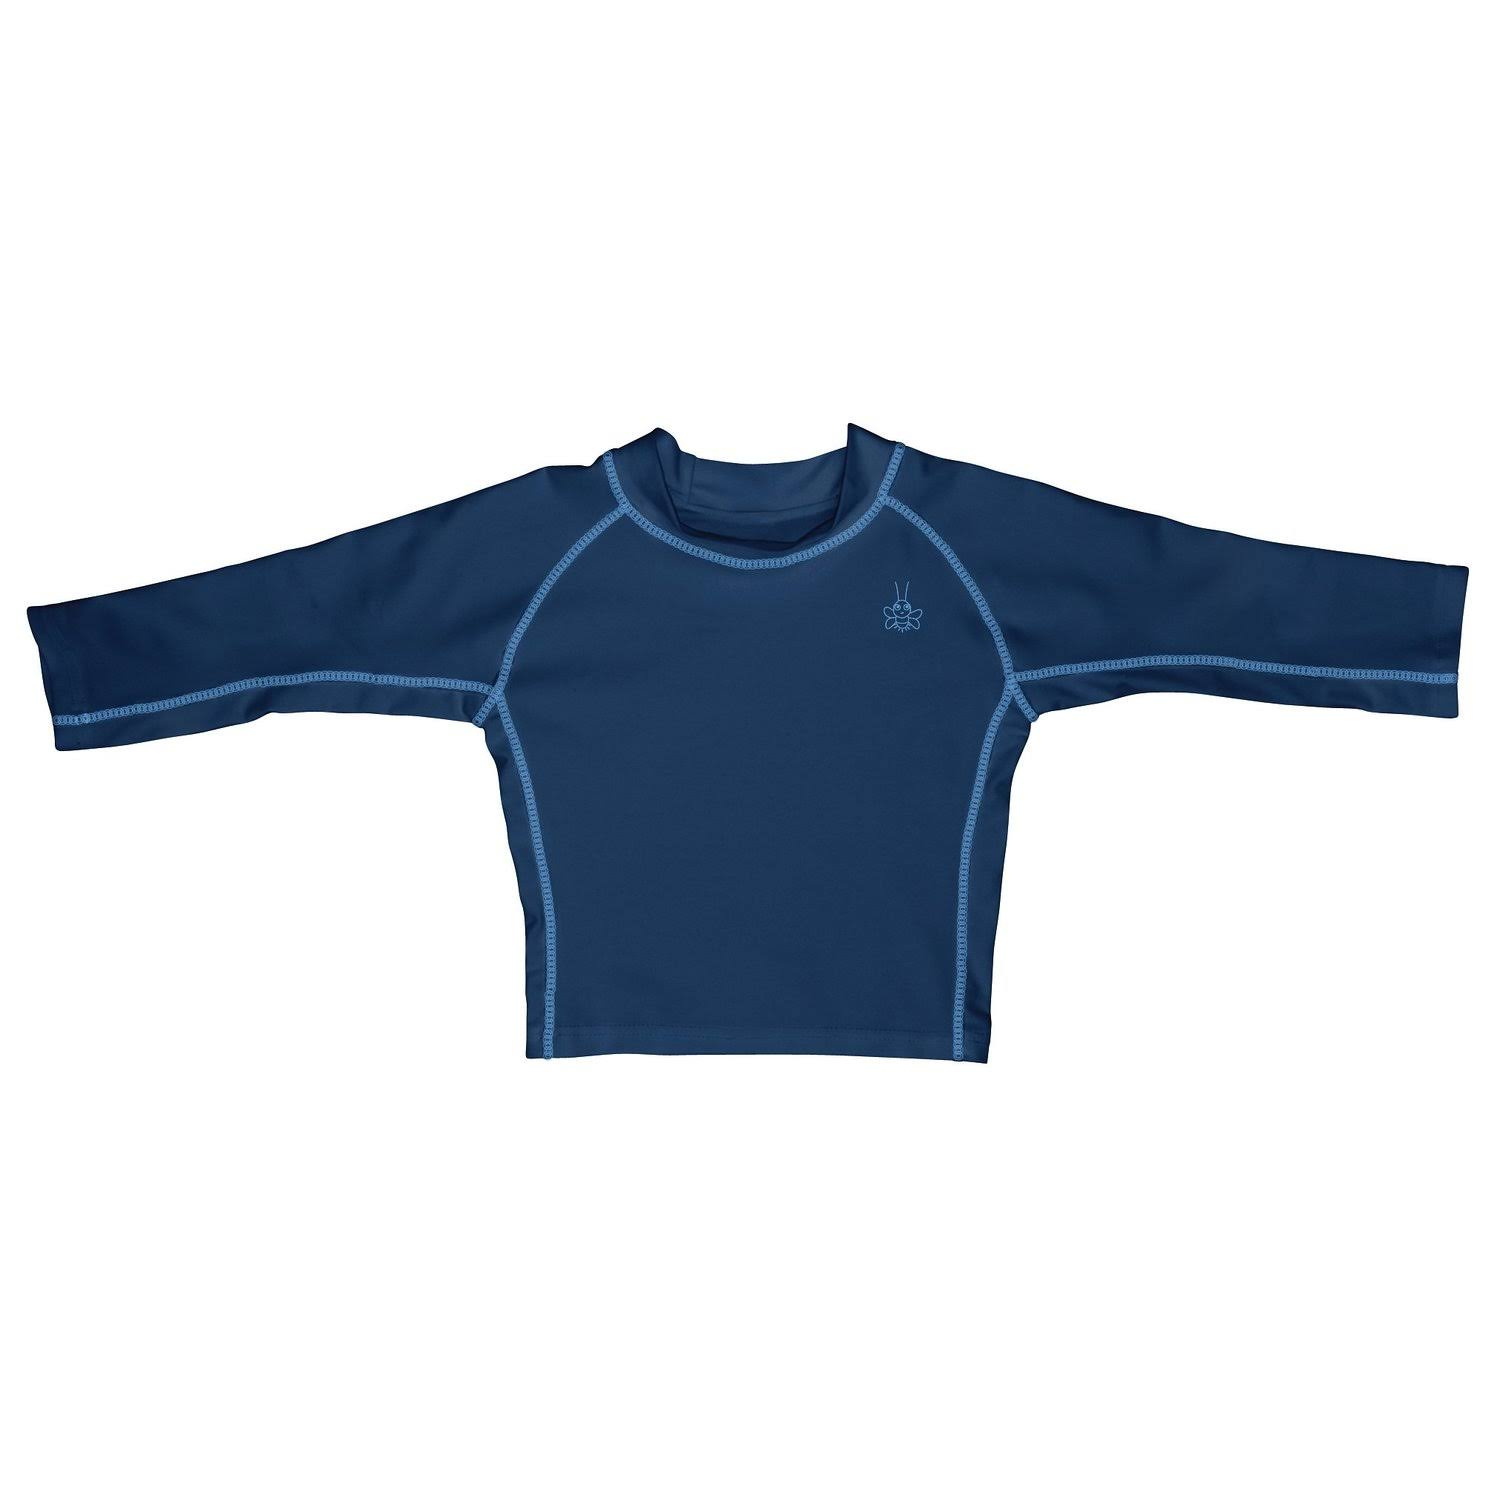 I Play. Baby Long Sleeve Rashguard Shirt, Navy, 12 Months